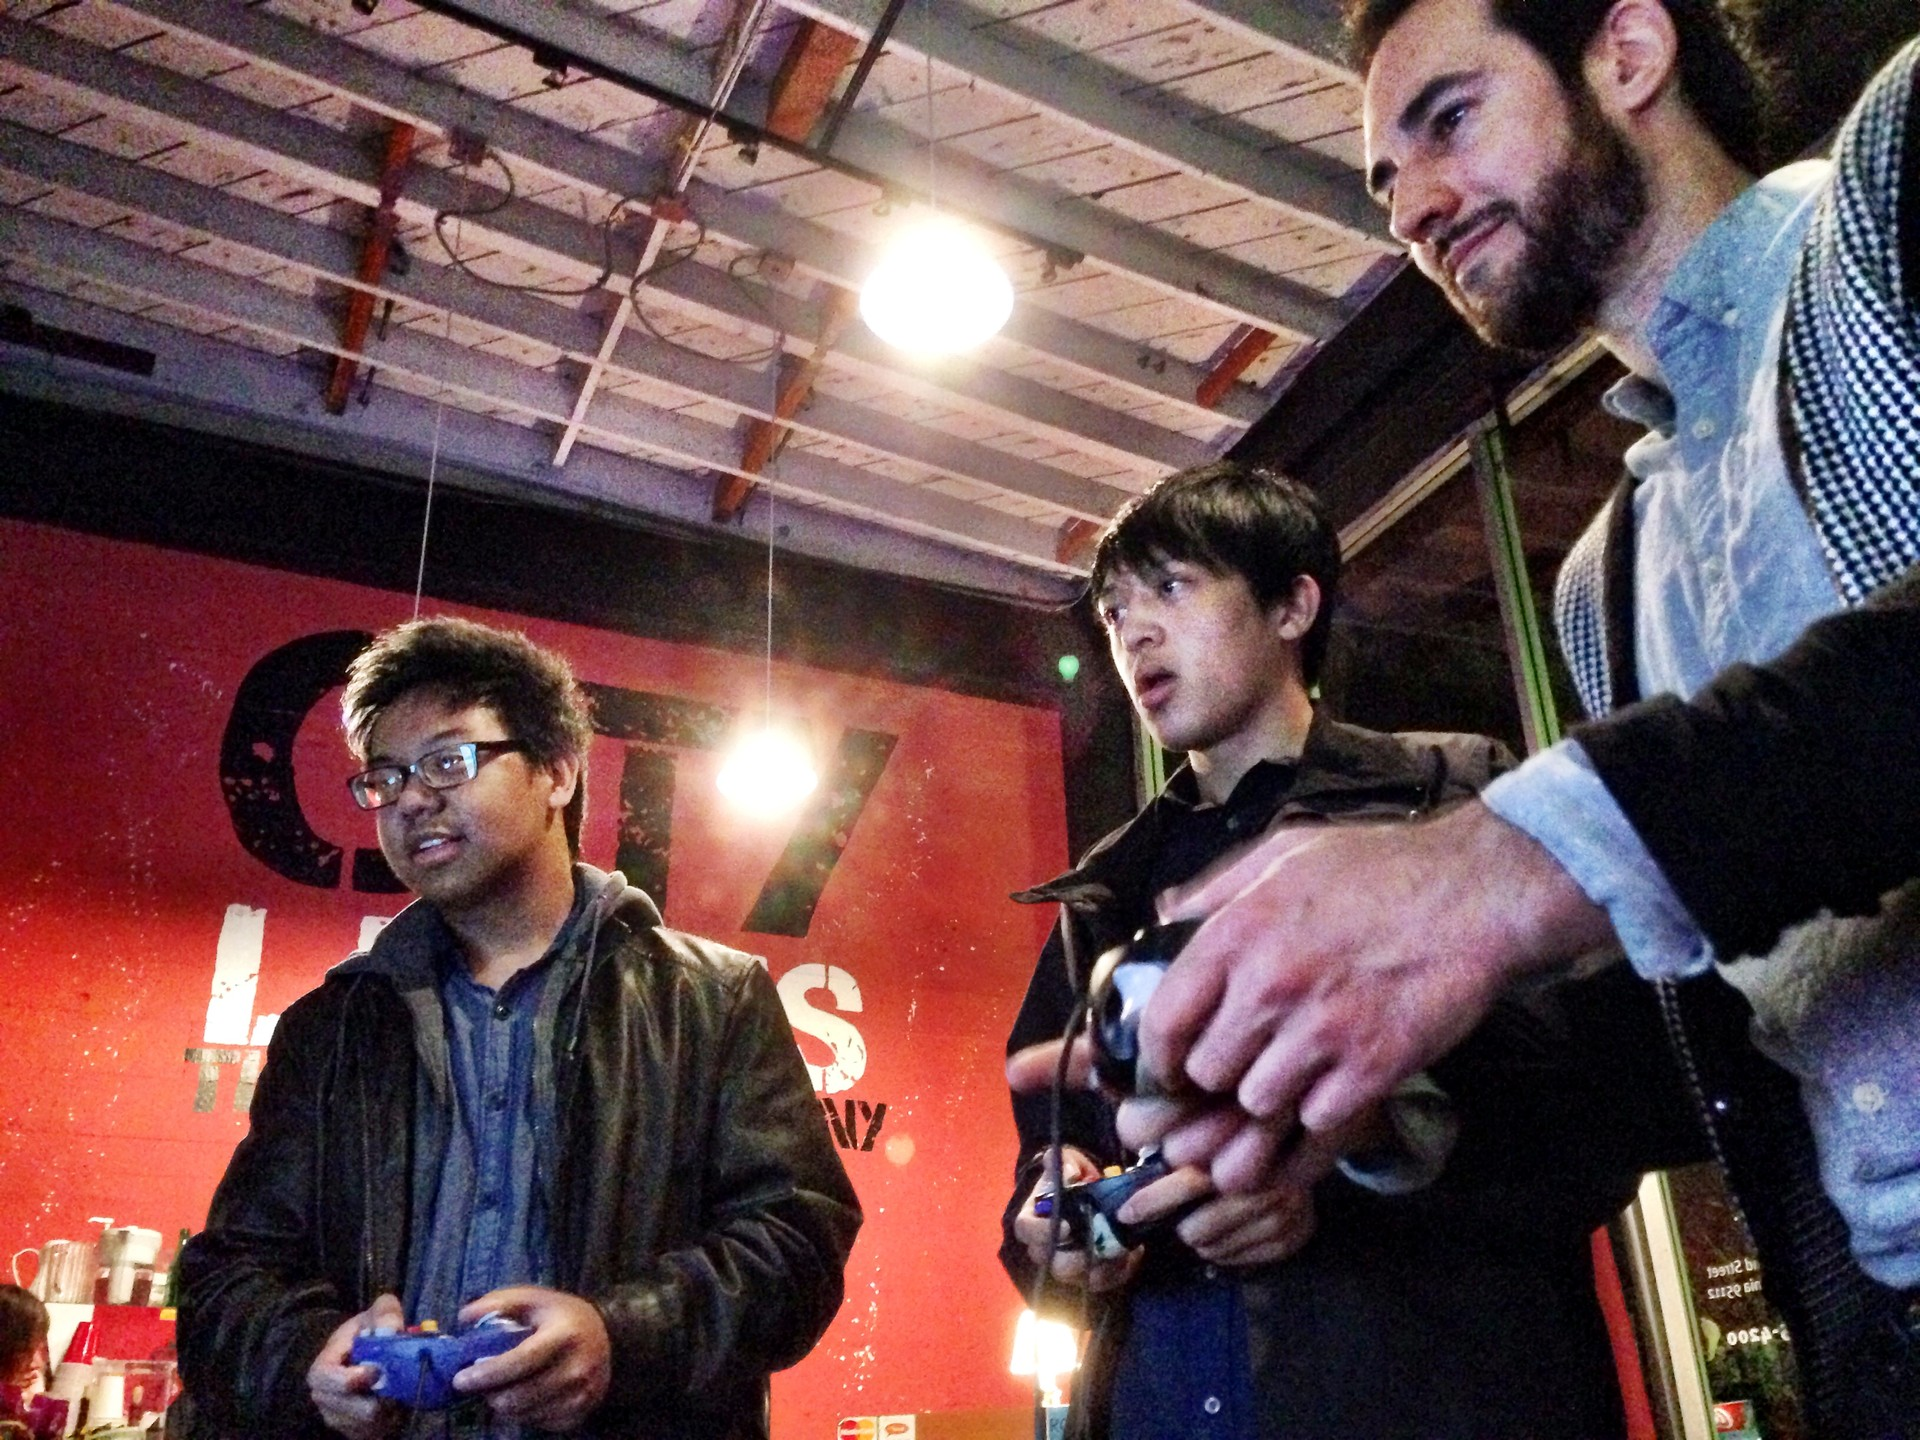 Students Brandon and Christian de la Cruz and Rockage founder Eric Fanali playing video games at the theater.